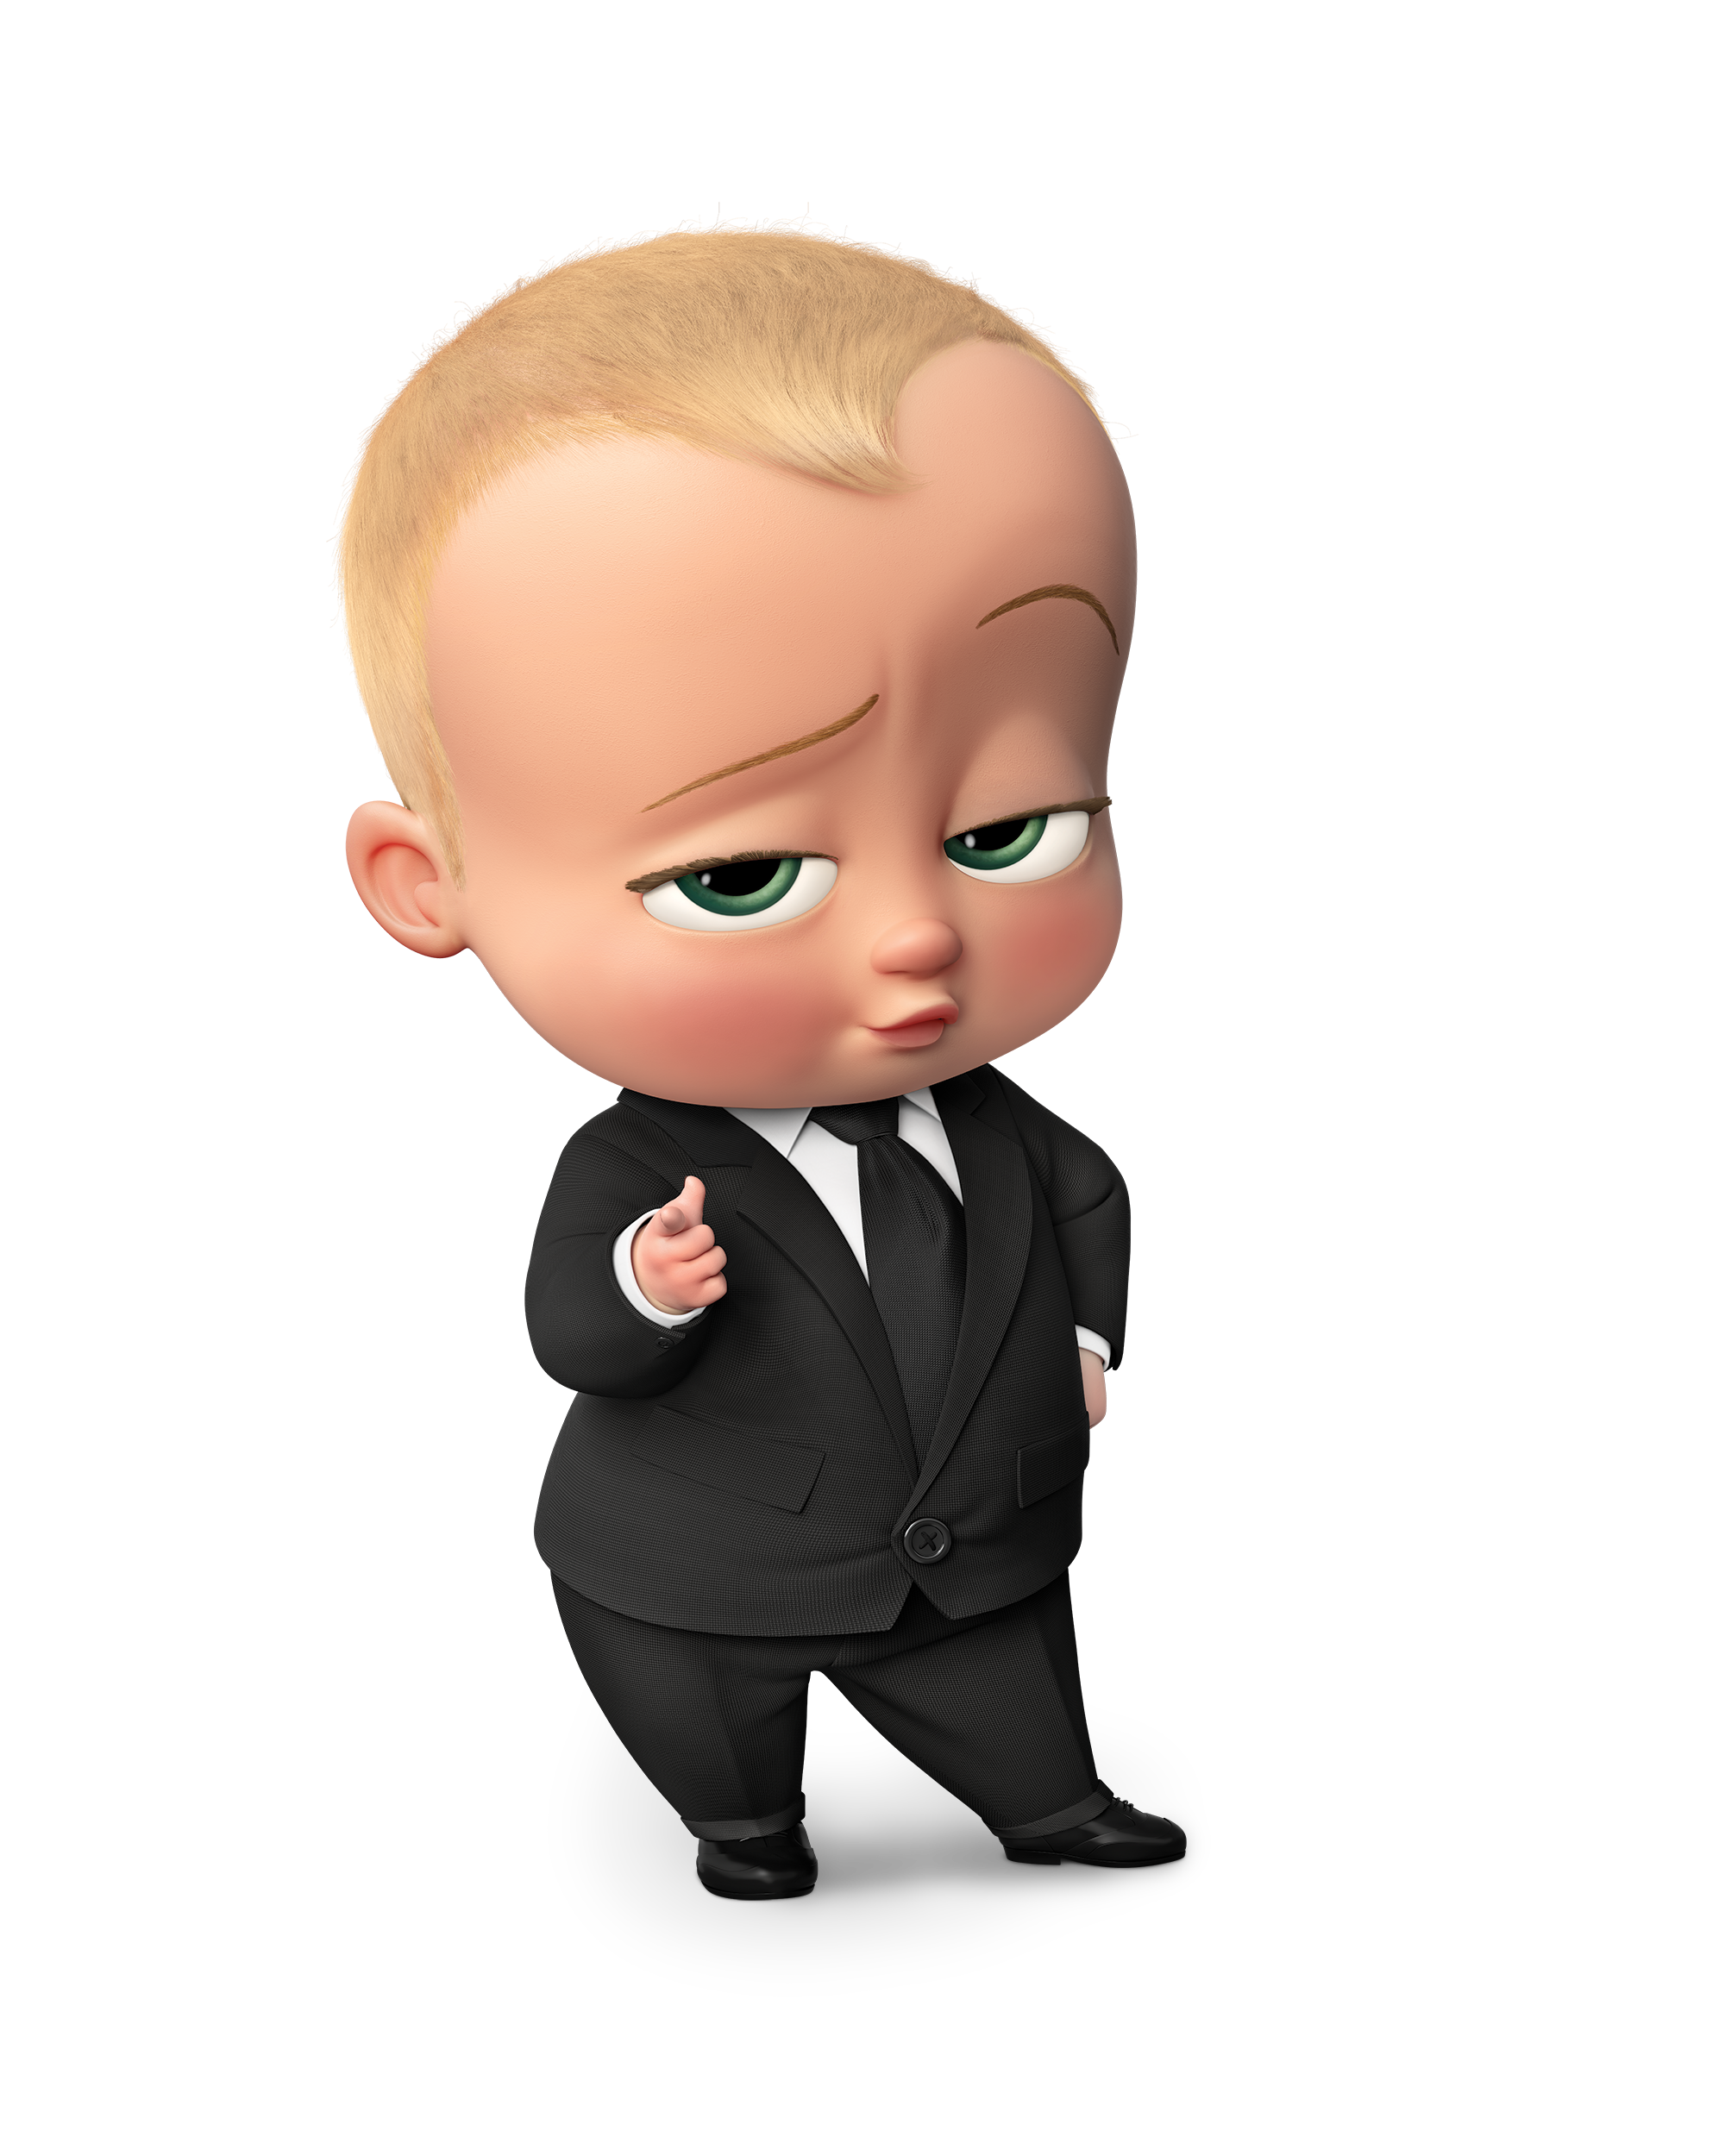 Boss baby png. Image character the parody